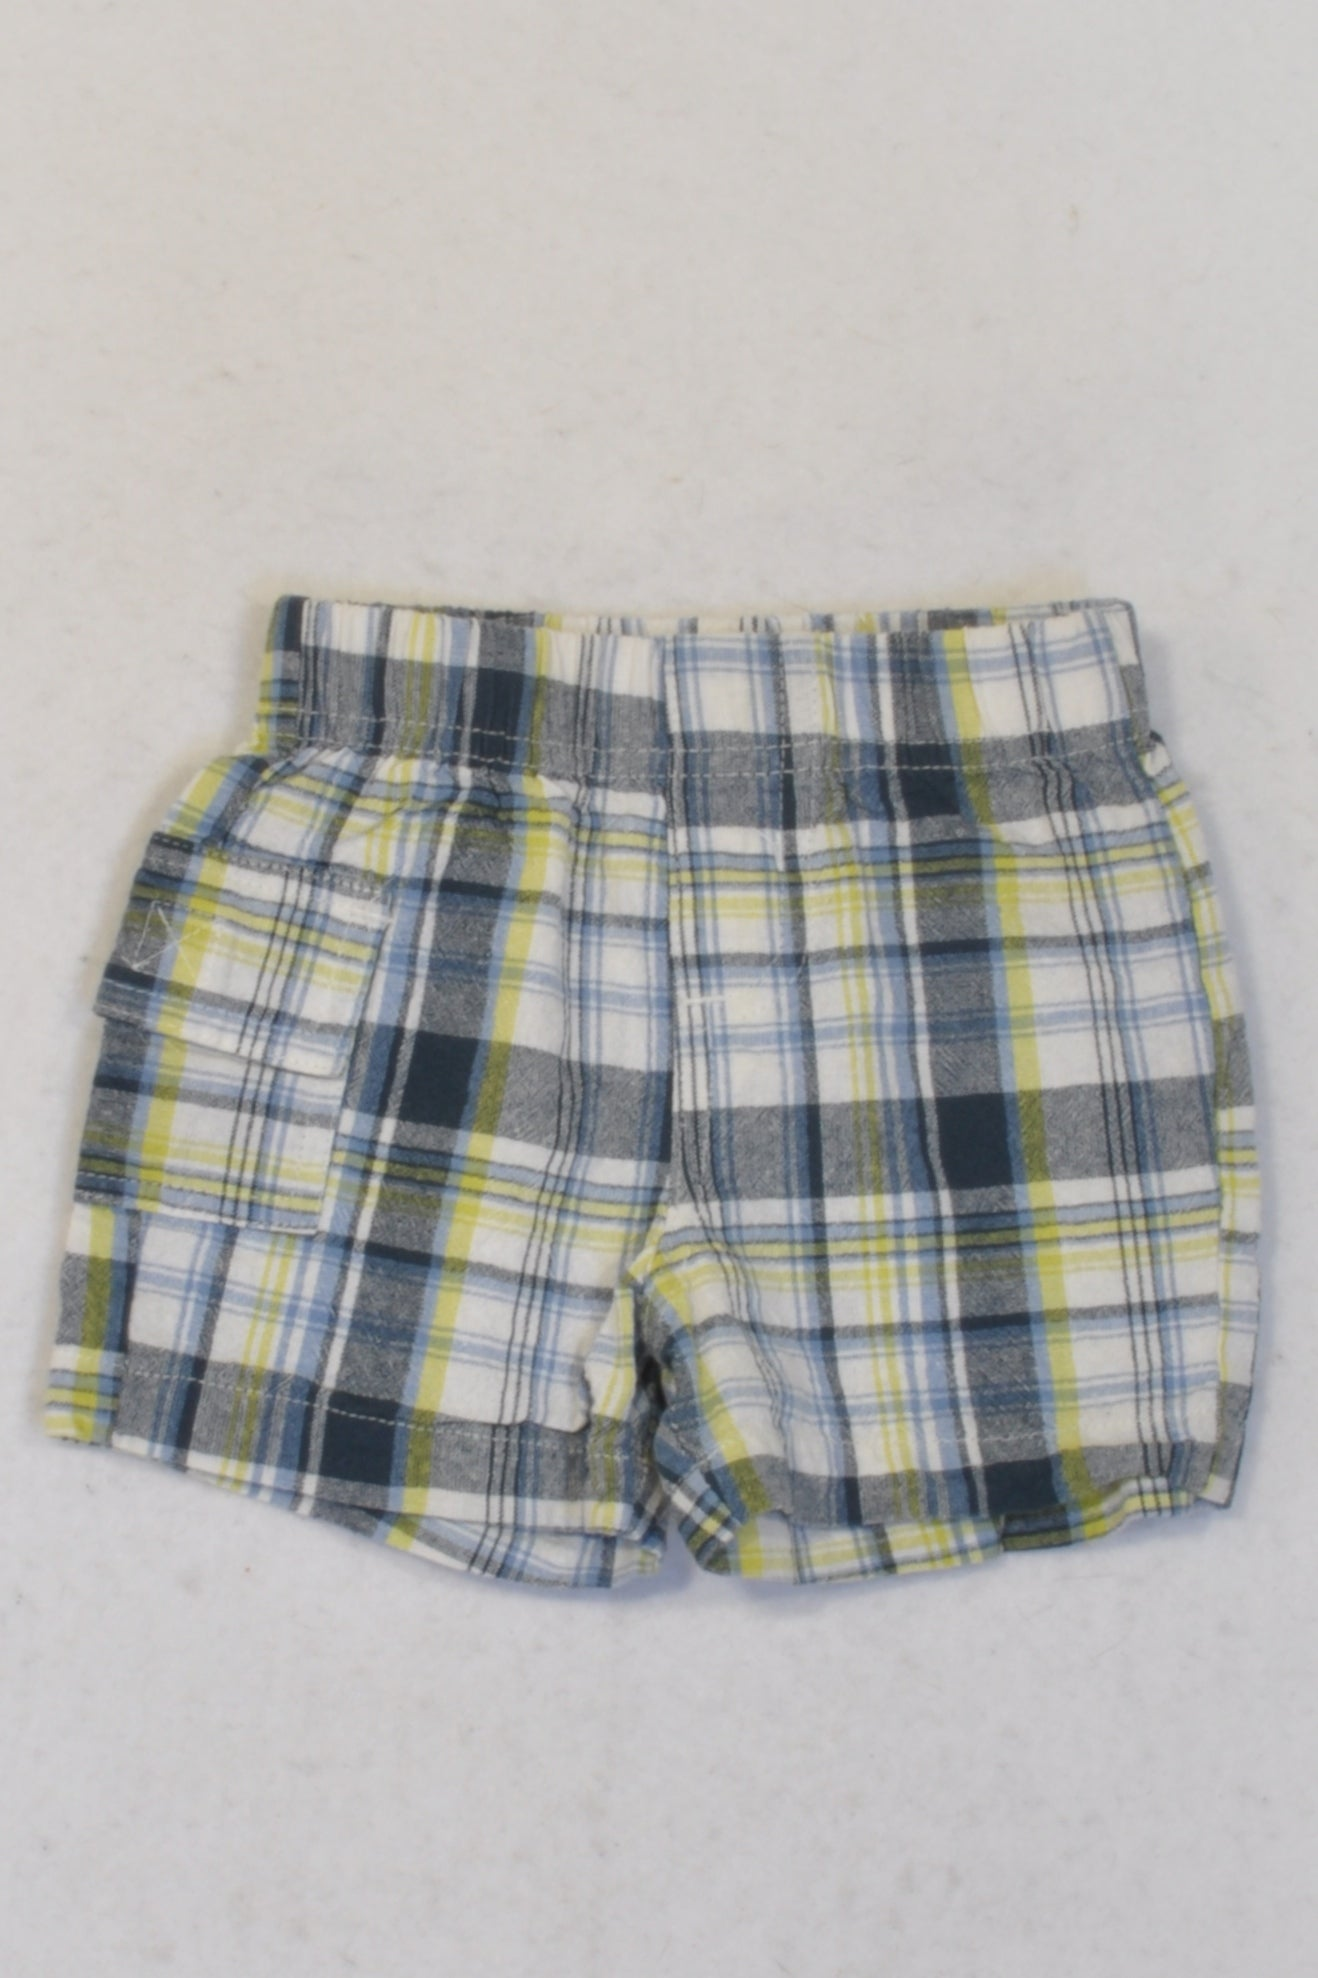 Ackermans Green & Navy Madras Shorts Boys 0-3 months